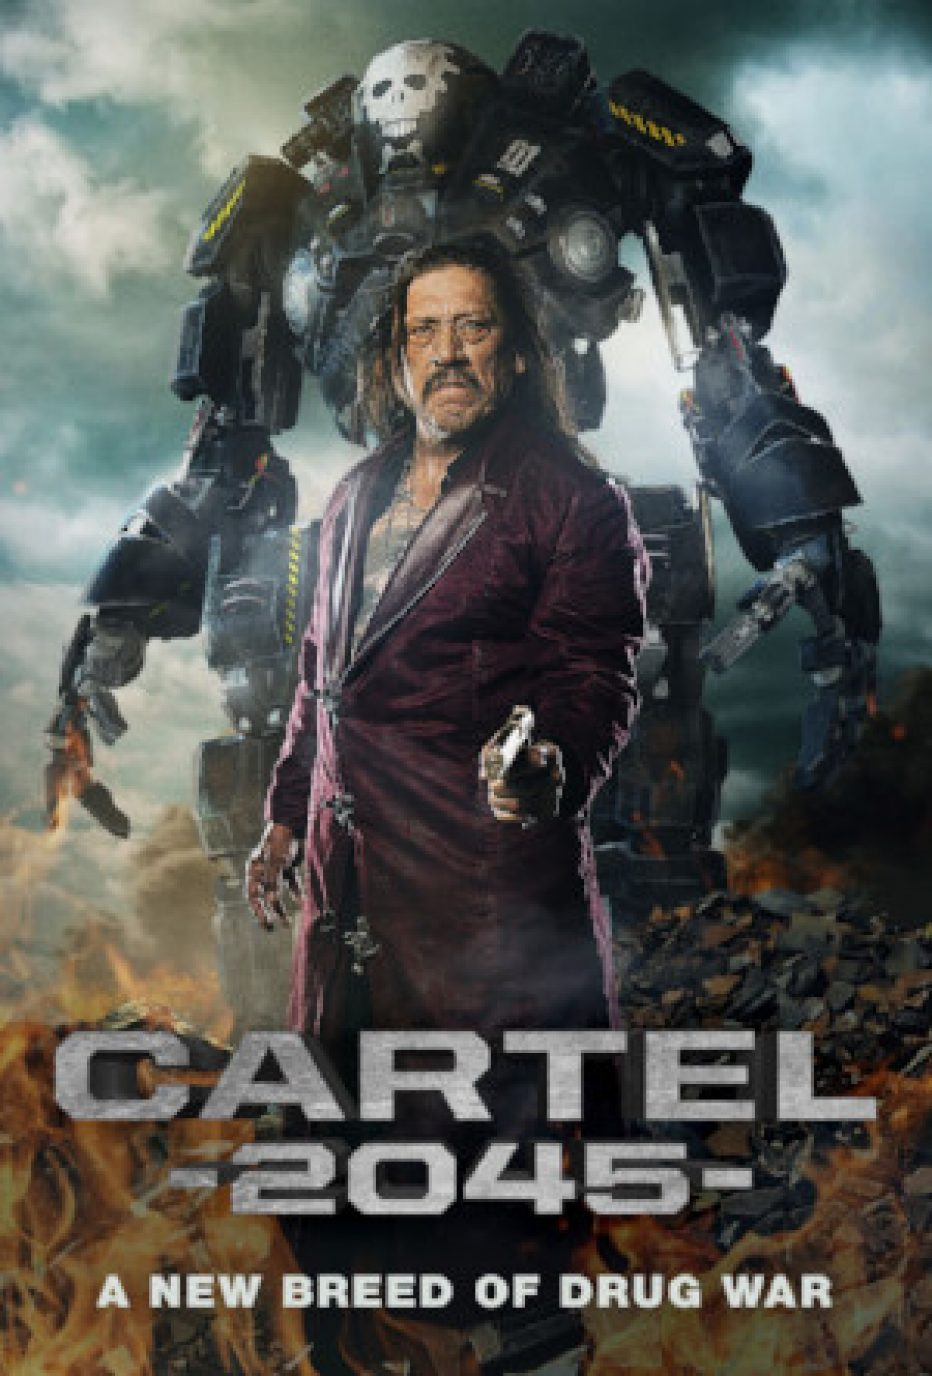 DANNY TREJO in sci-fi action thriller CARTEL 2045  – Premiering on VOD this May from Uncork'd Entertainment